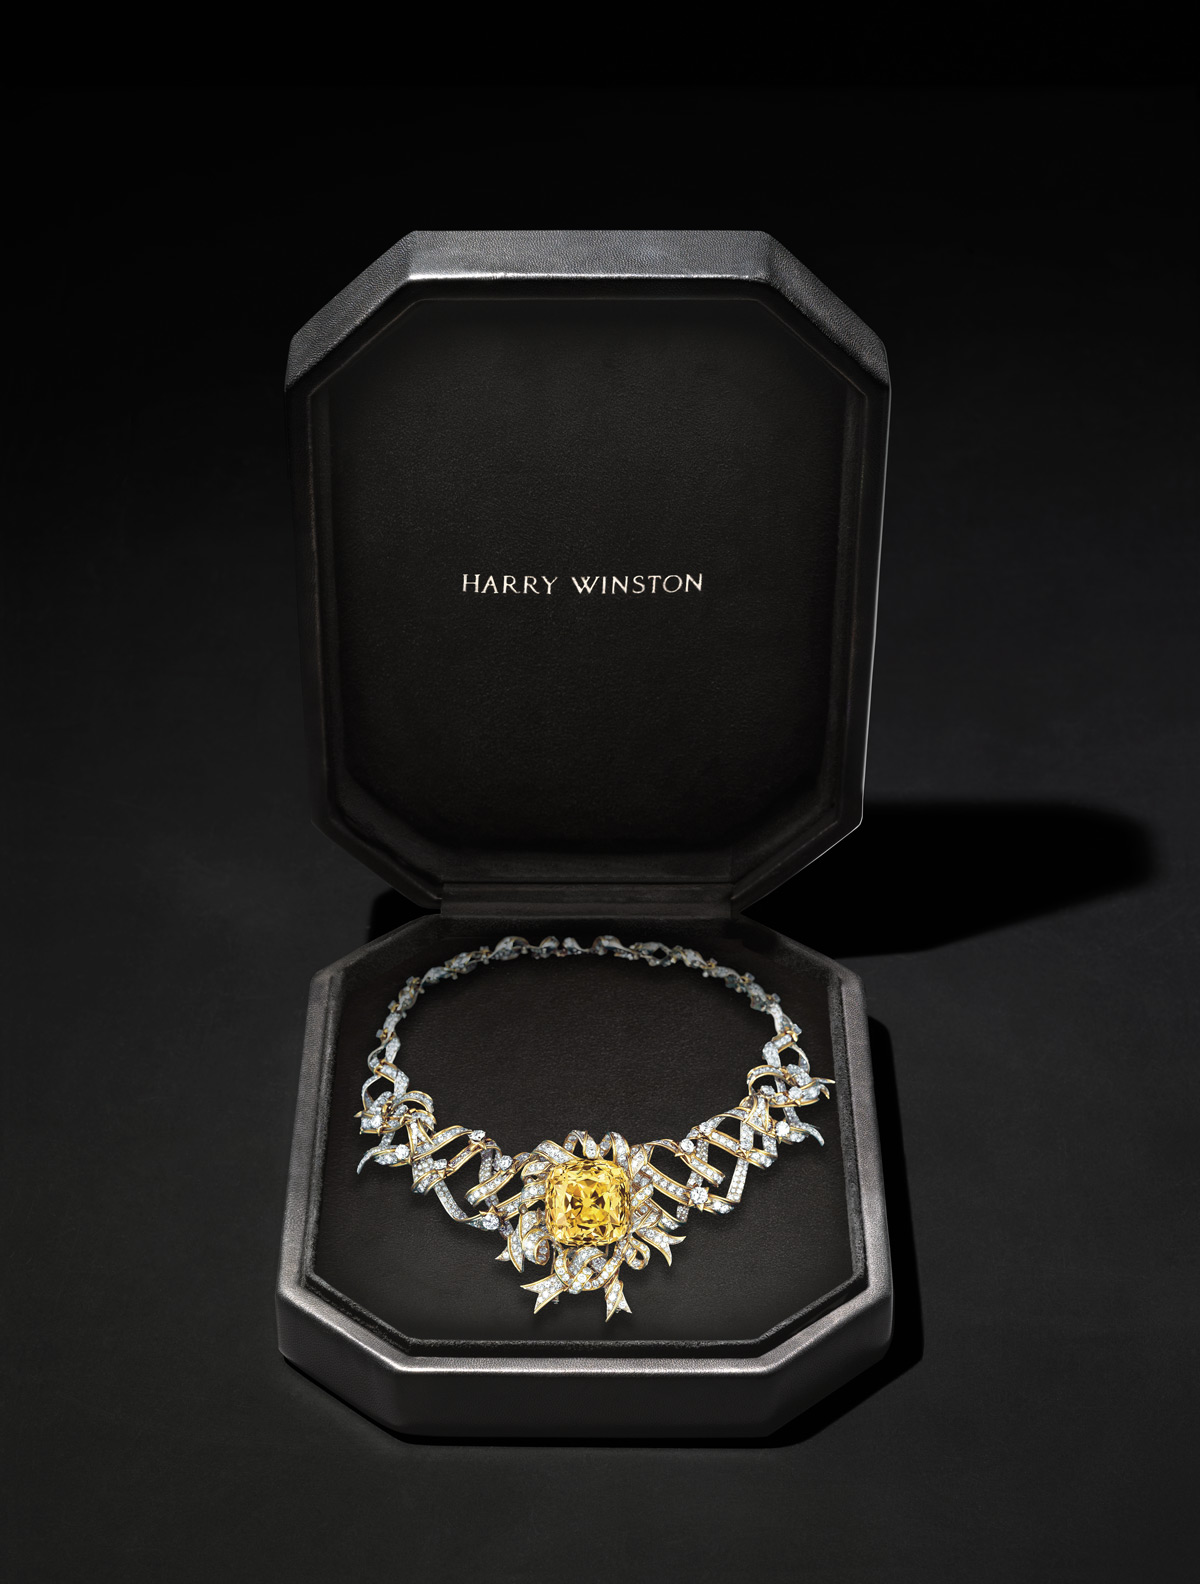 Packaging Design for Luxury Fine Jewelry Brand Harry Winston. Design and Production Brand Strategy by Benard Creative.